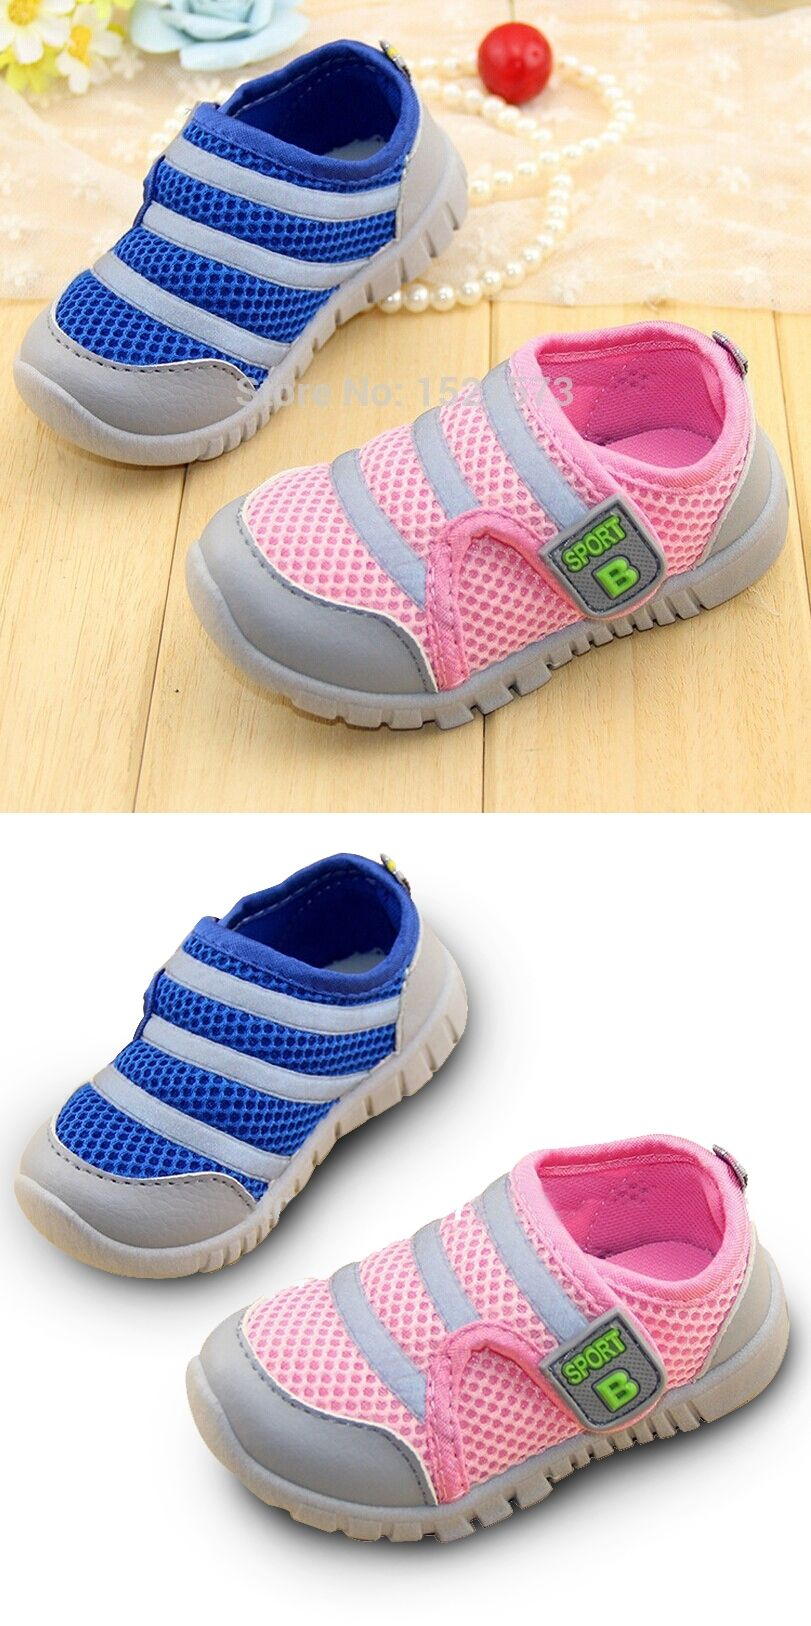 e70c2e81d61c New 2017 Children shoes Brands sneaker 13-15.5 cm baby shoes First STep boy Girl  Shoes antiskid footwear Infant Newborn shoes